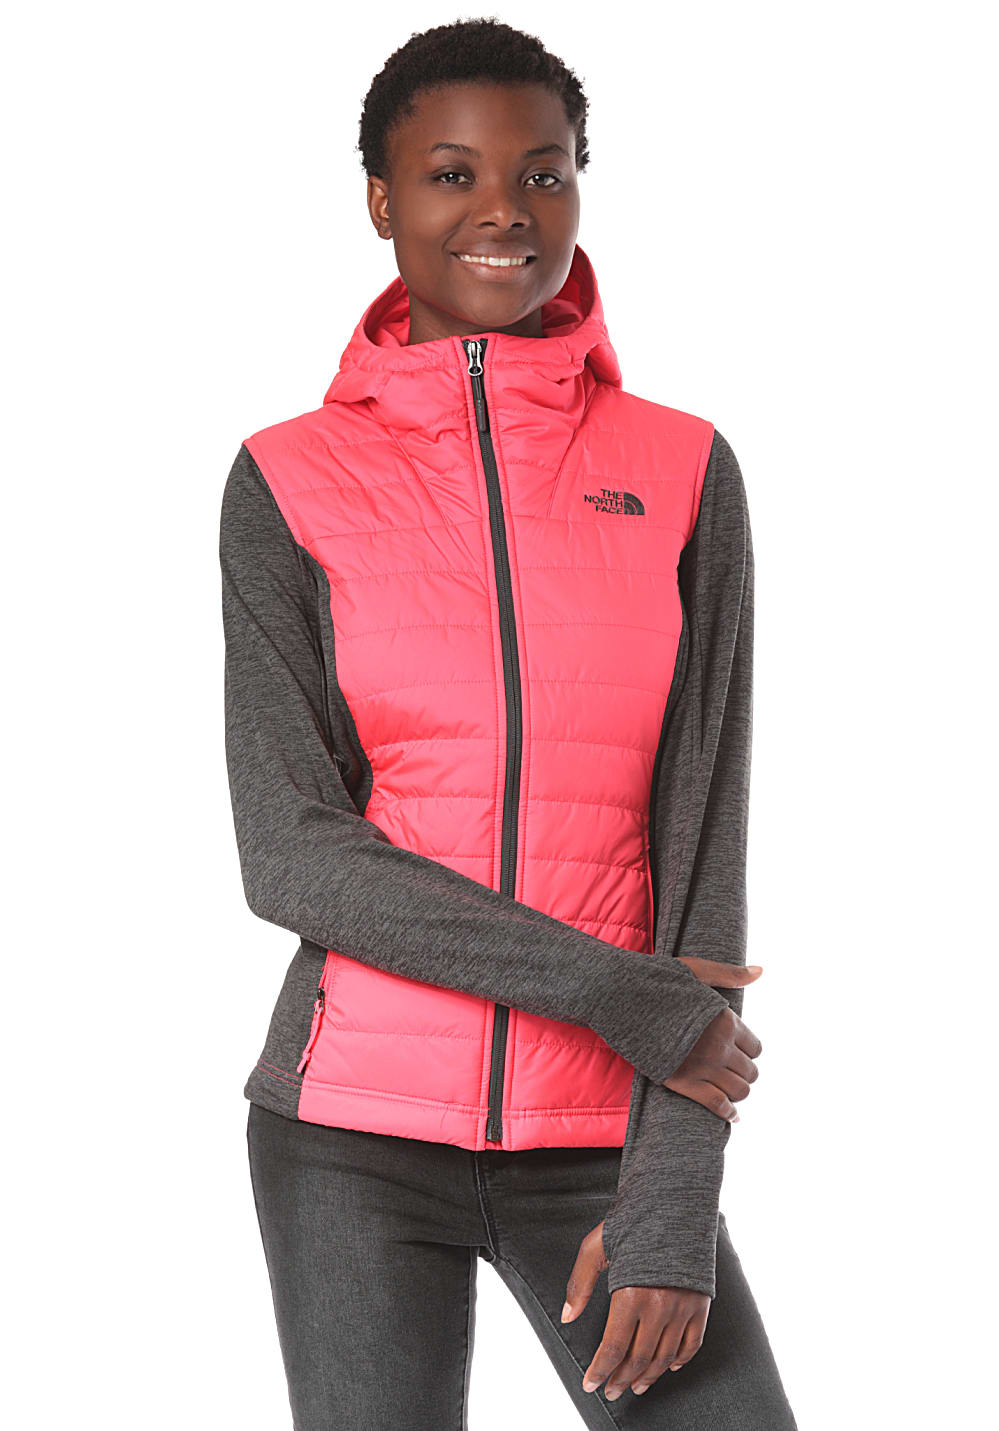 9c9621d41 THE NORTH FACE Mashup Pl Hdie - Outdoor Jacket for Women - Pink ...